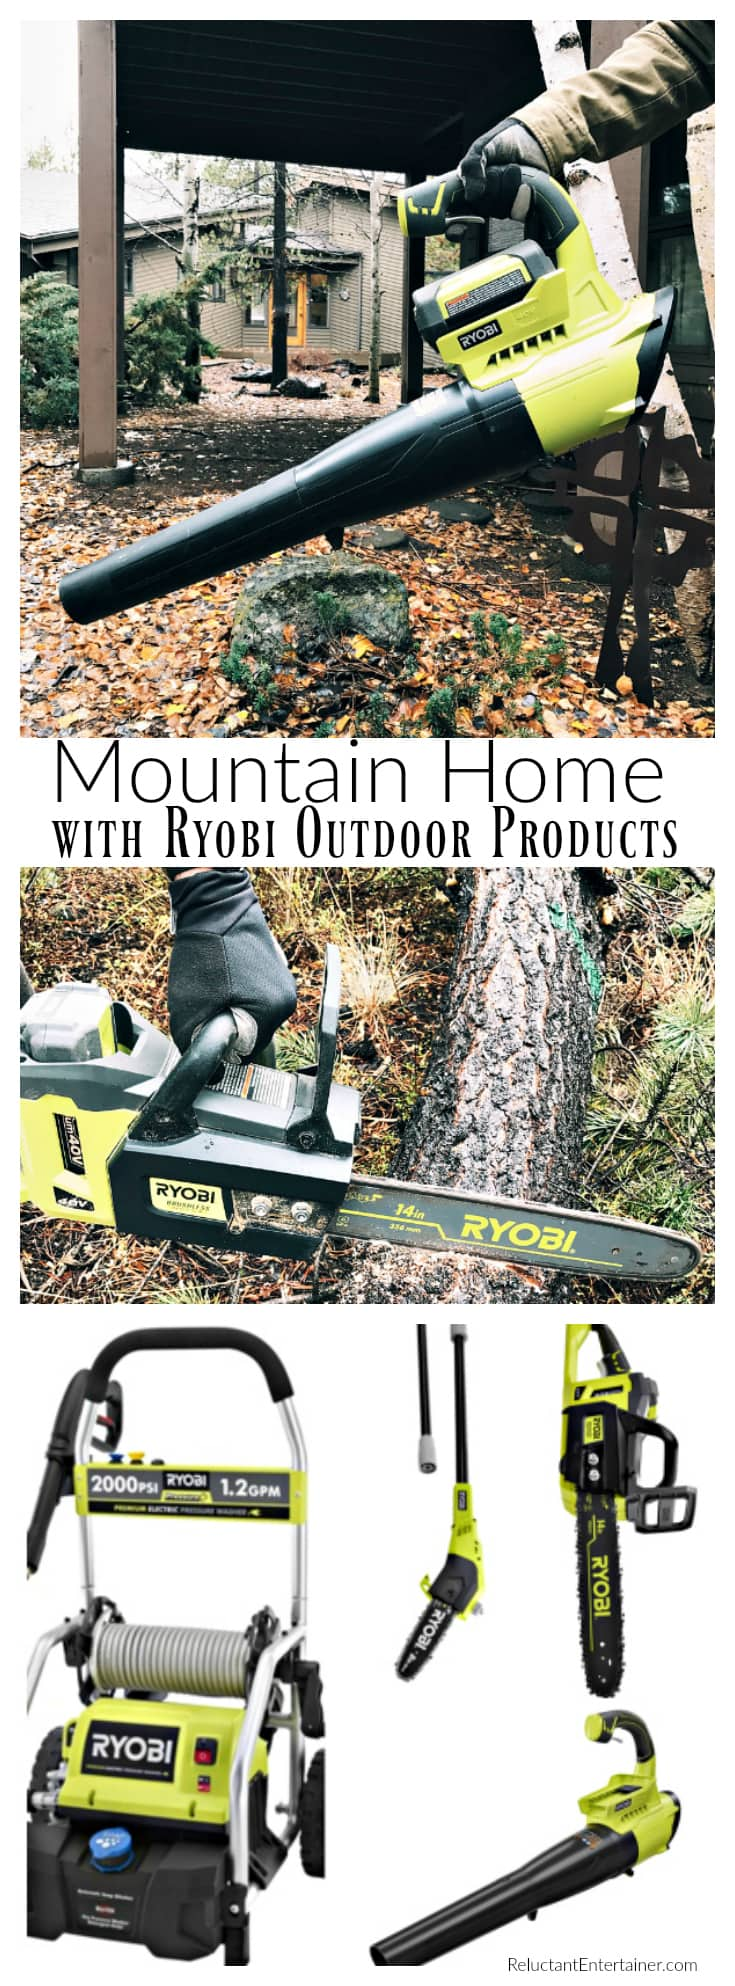 Mountain Home with RYOBI Outdoor Products at ReluctantEntertainer.com